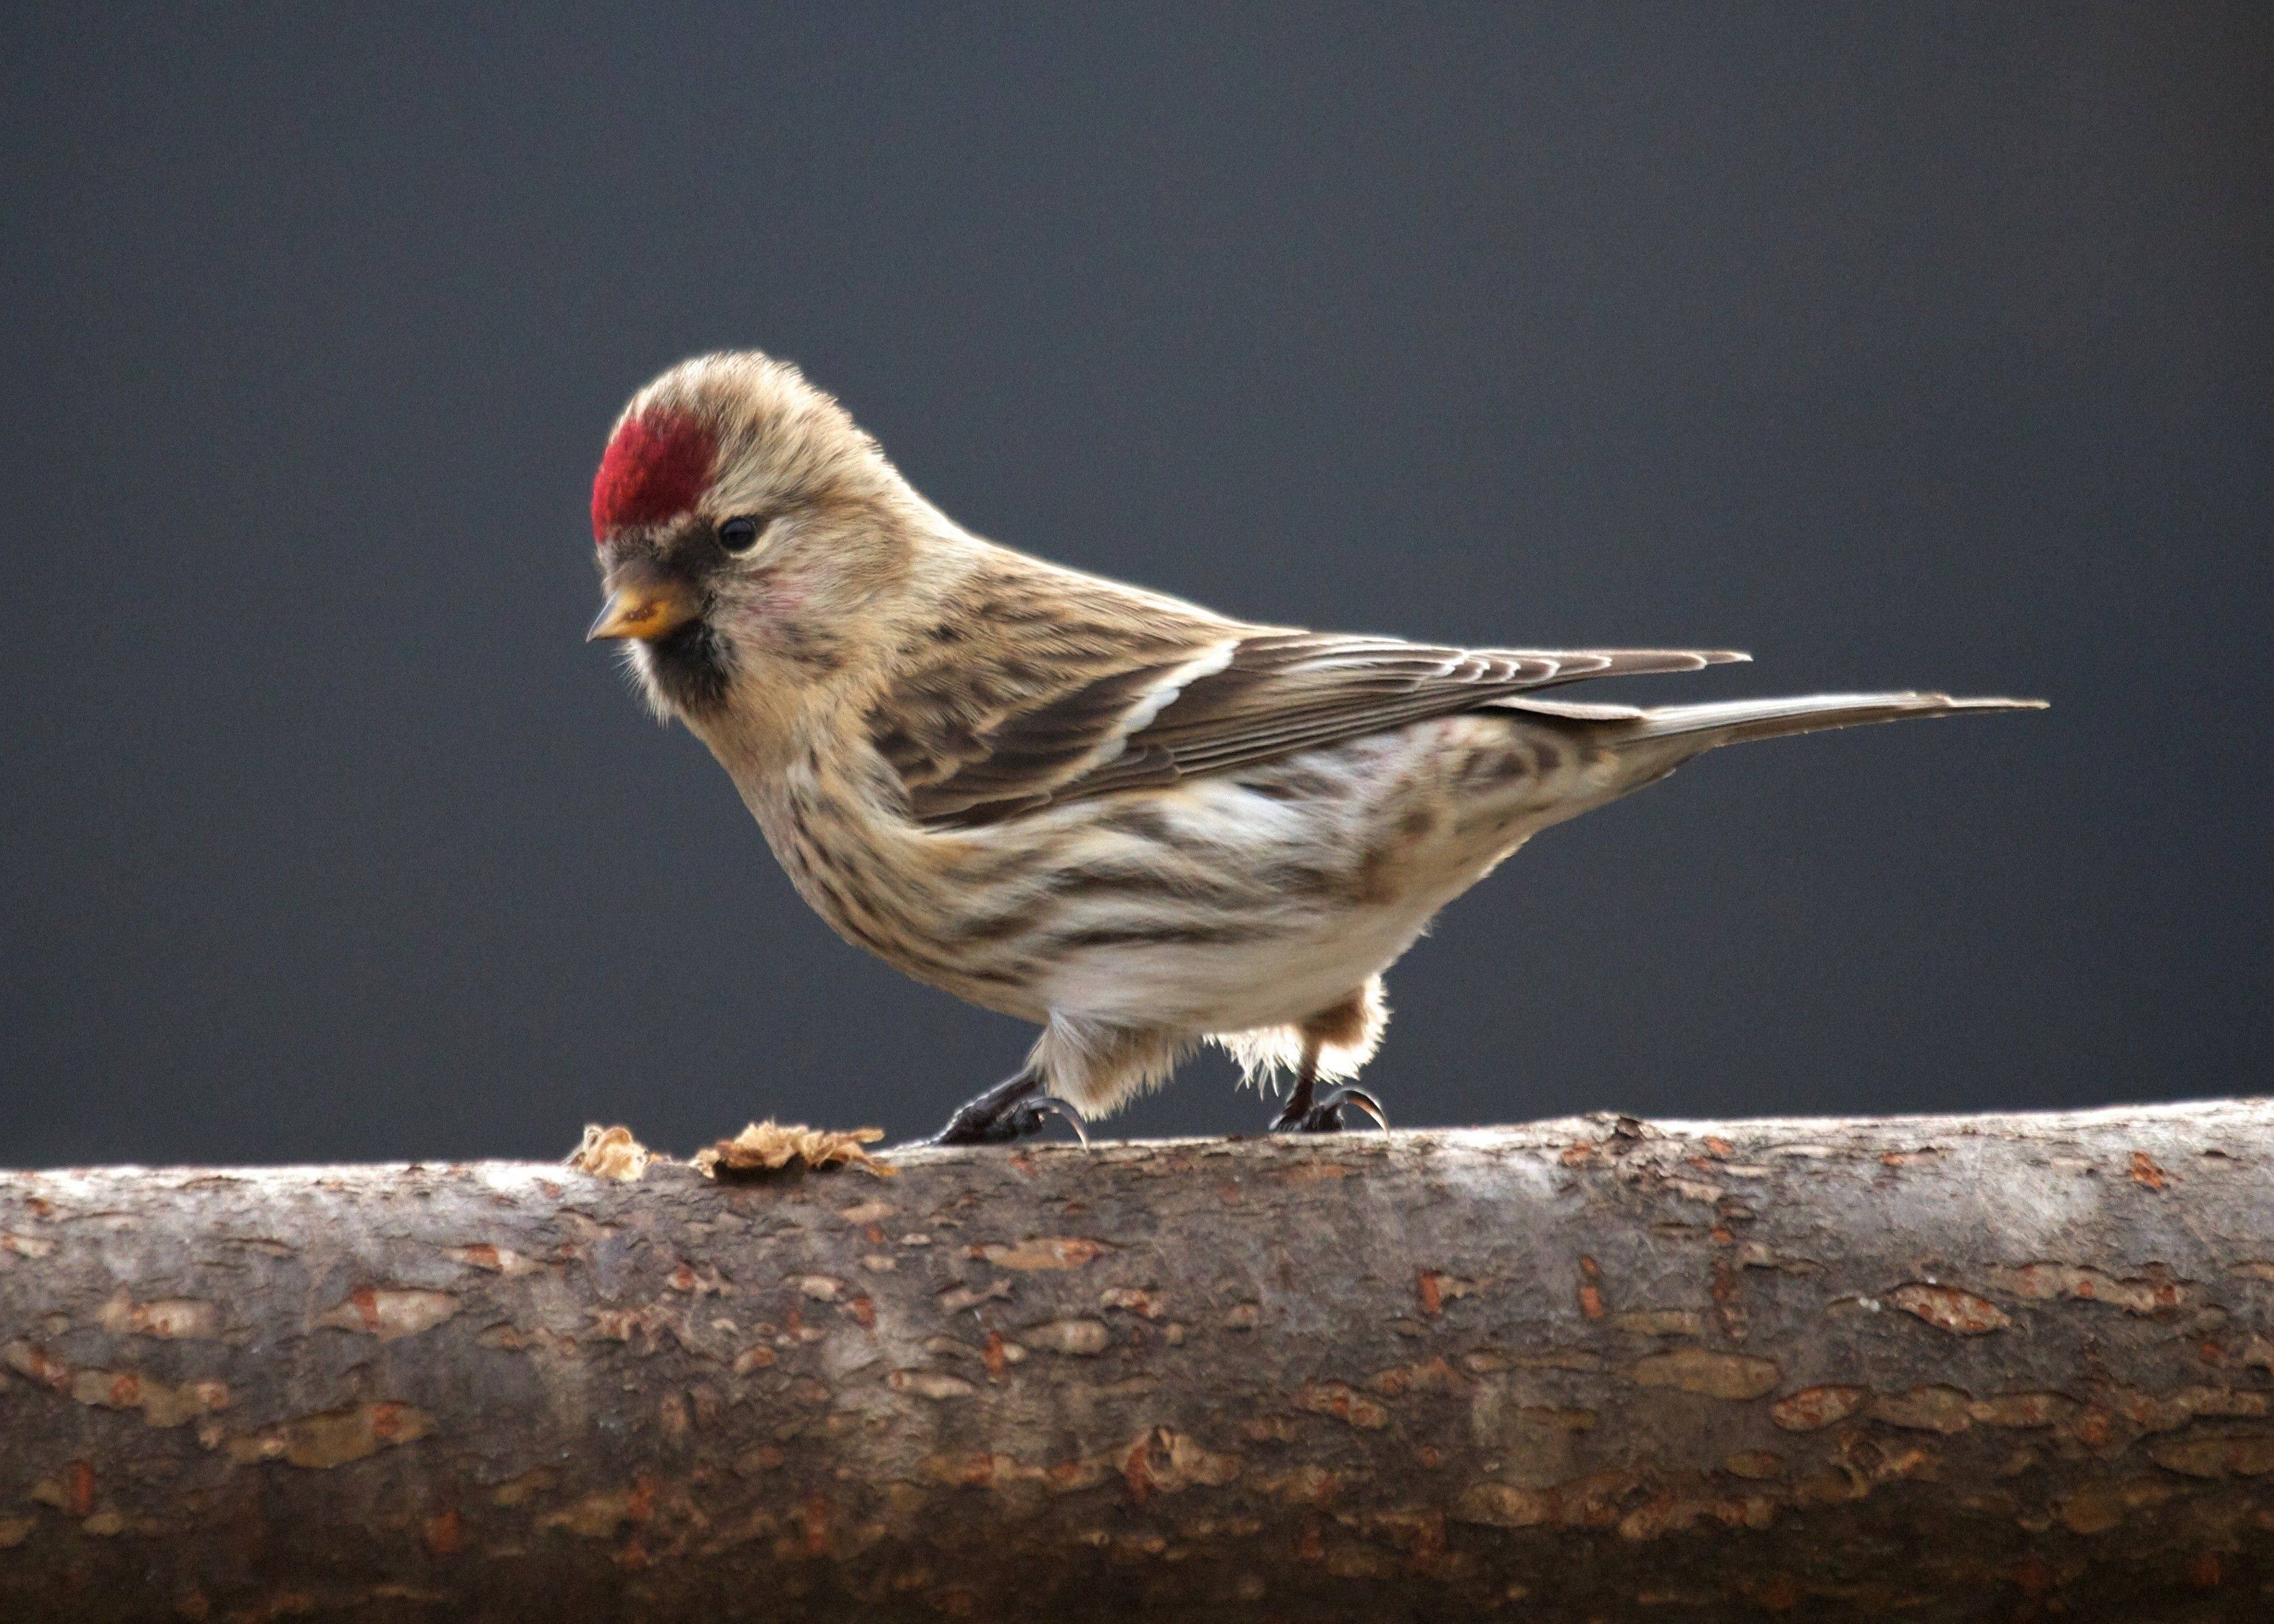 The common redpoll is a rare and coveted backyard visitor. This one dined at a Hinsdale feeder last month.